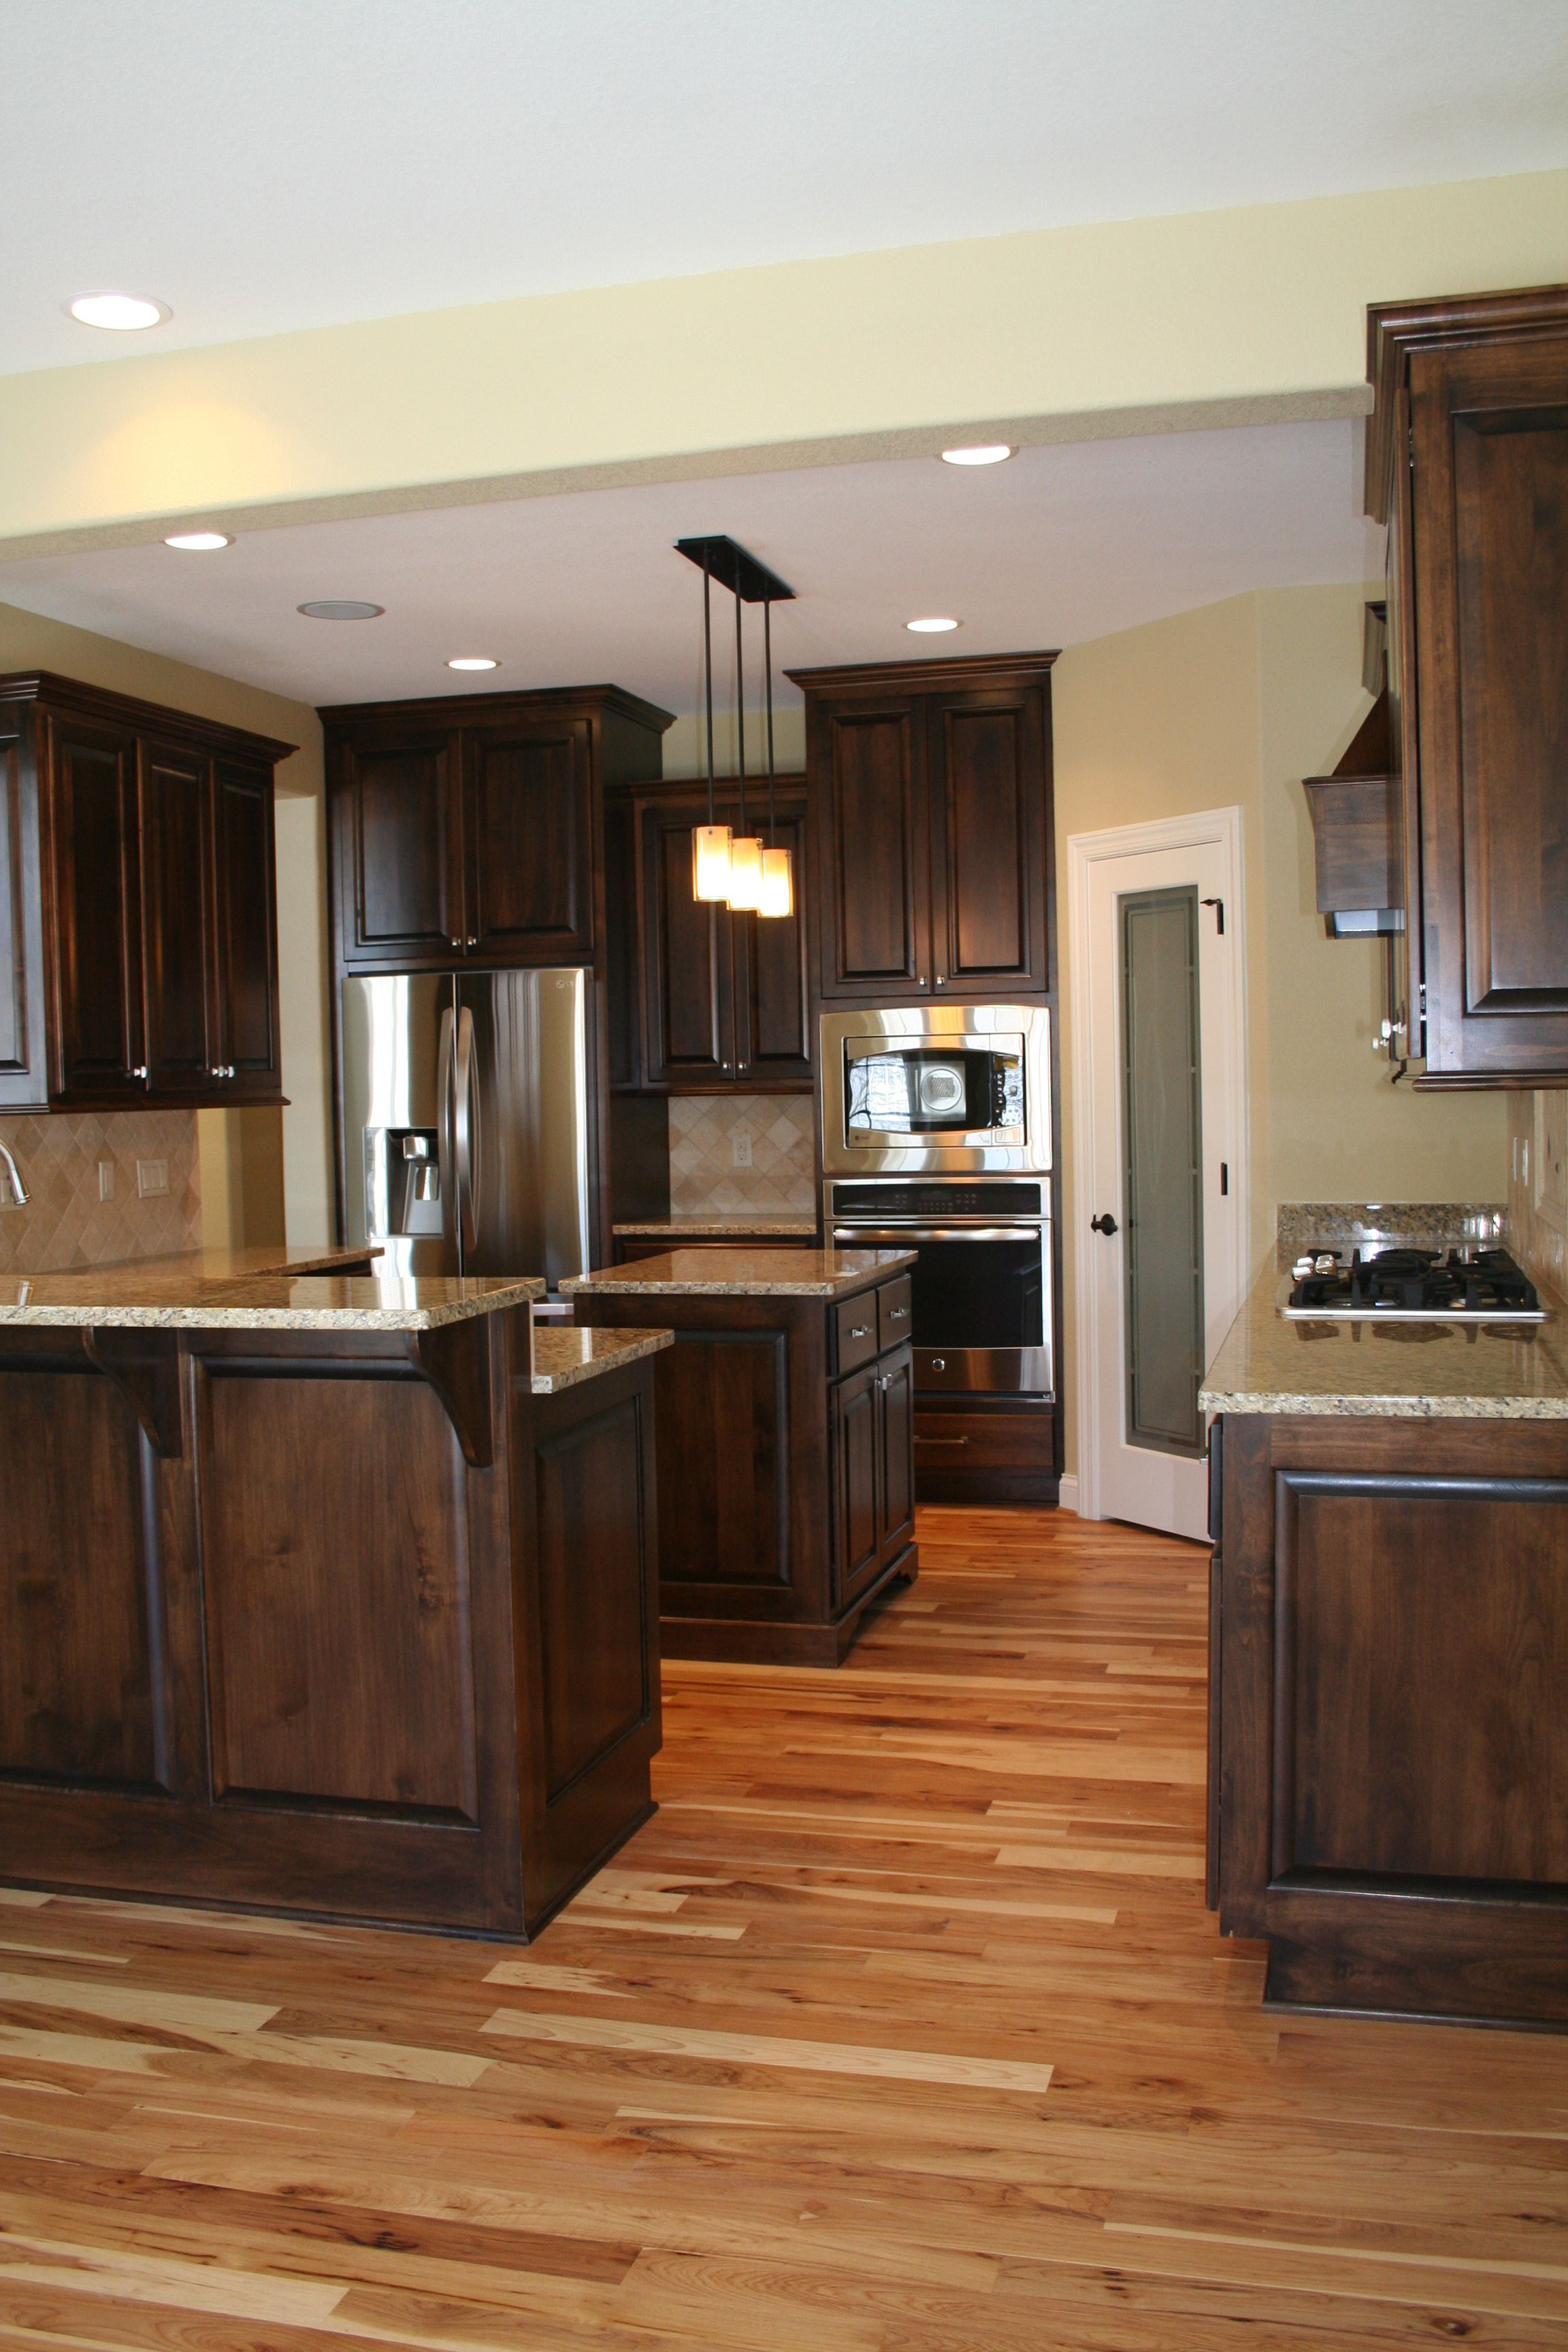 Best Alder Wood Cabinets Stainless Steel Appliances And 400 x 300